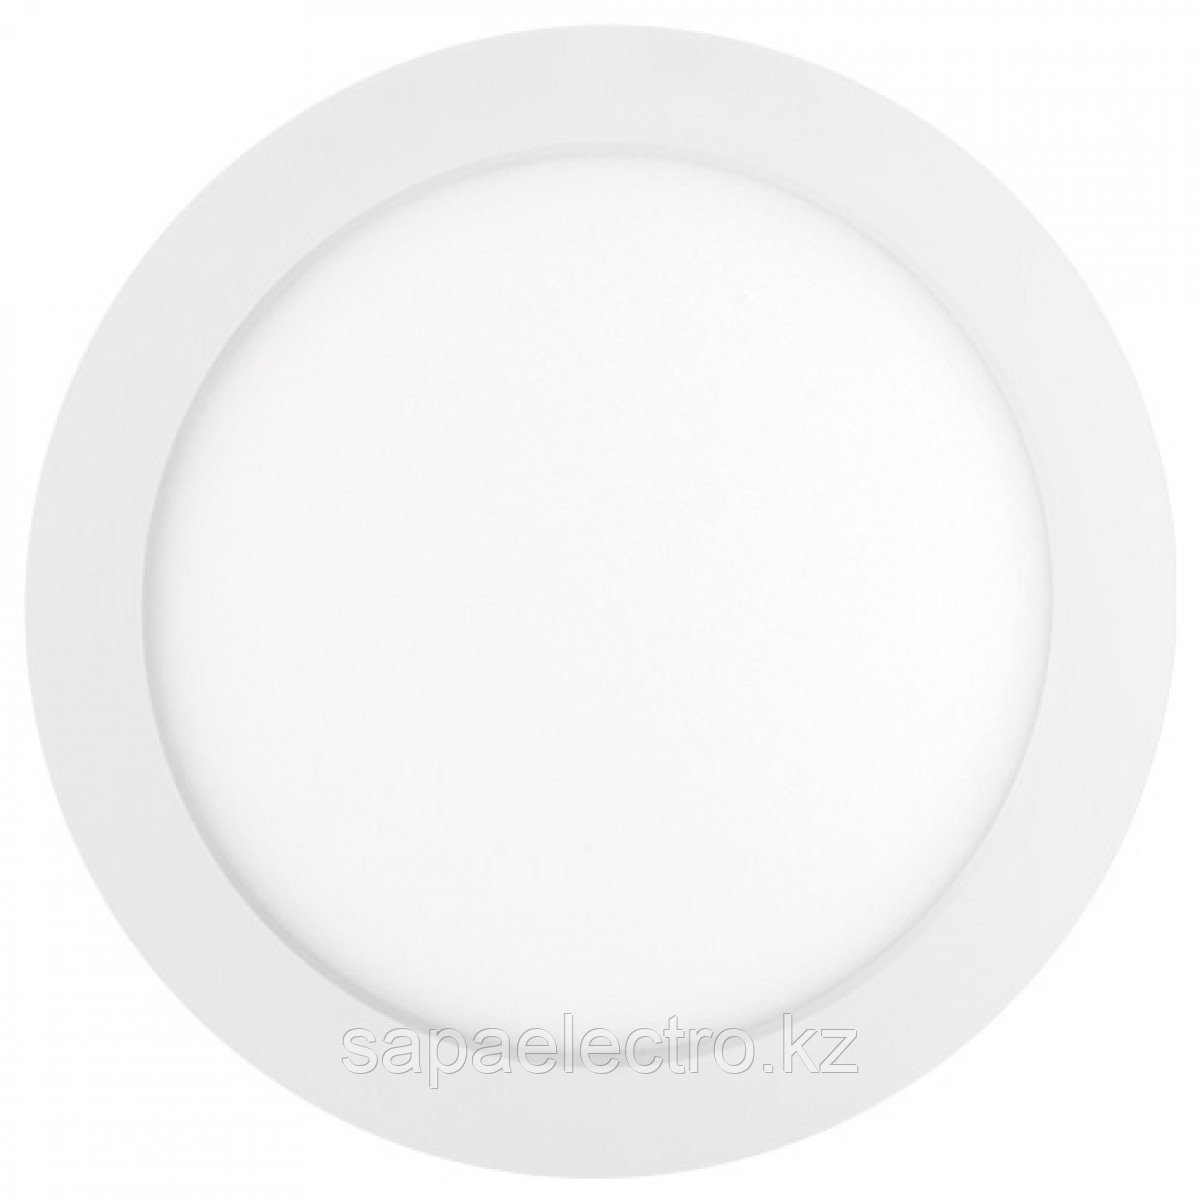 Св-к LED SLIM ROUND PANEL 18W 6000K (MS) 20шт